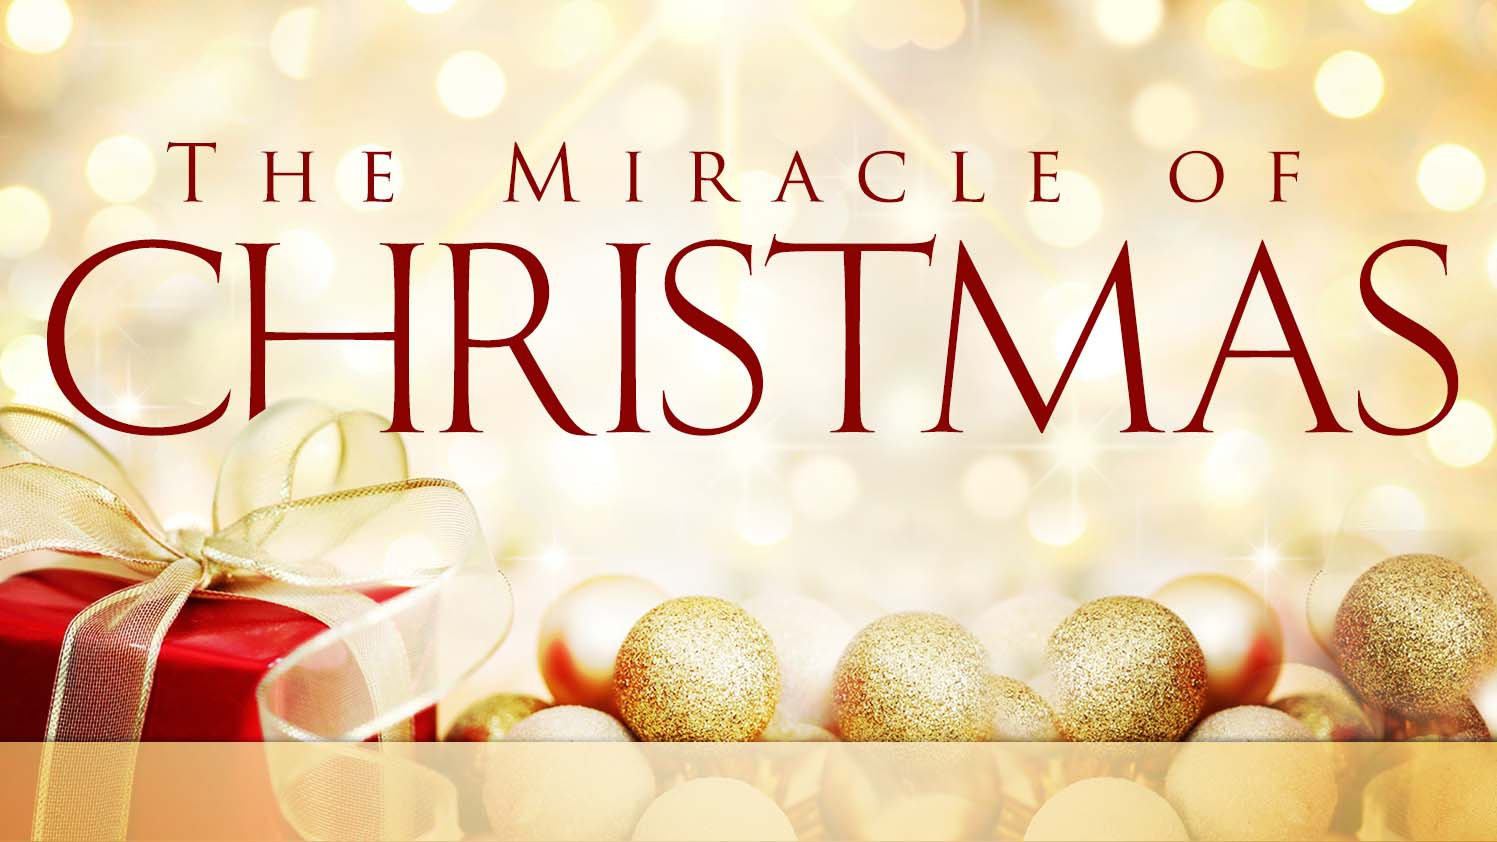 the-miracle-of-christmas-16x9